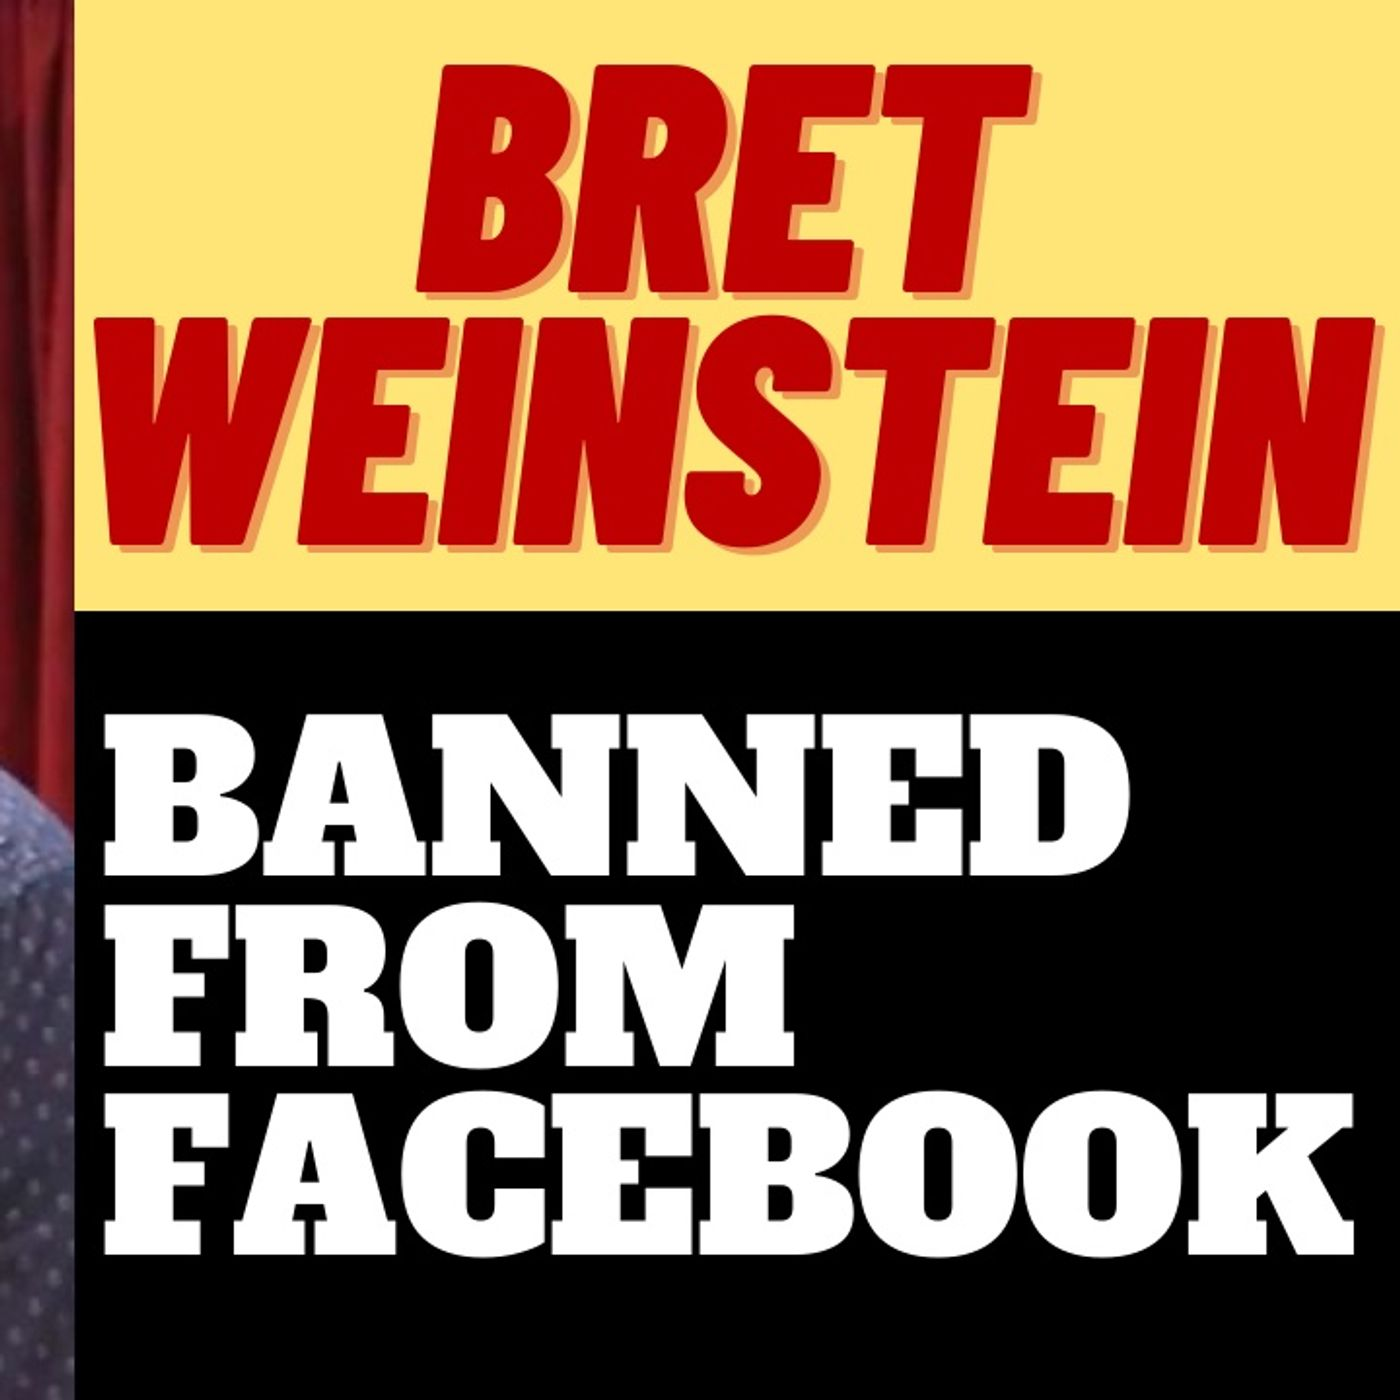 BRET WEINSTEIN BANNED FROM FACEBOOK - Another Mistake?